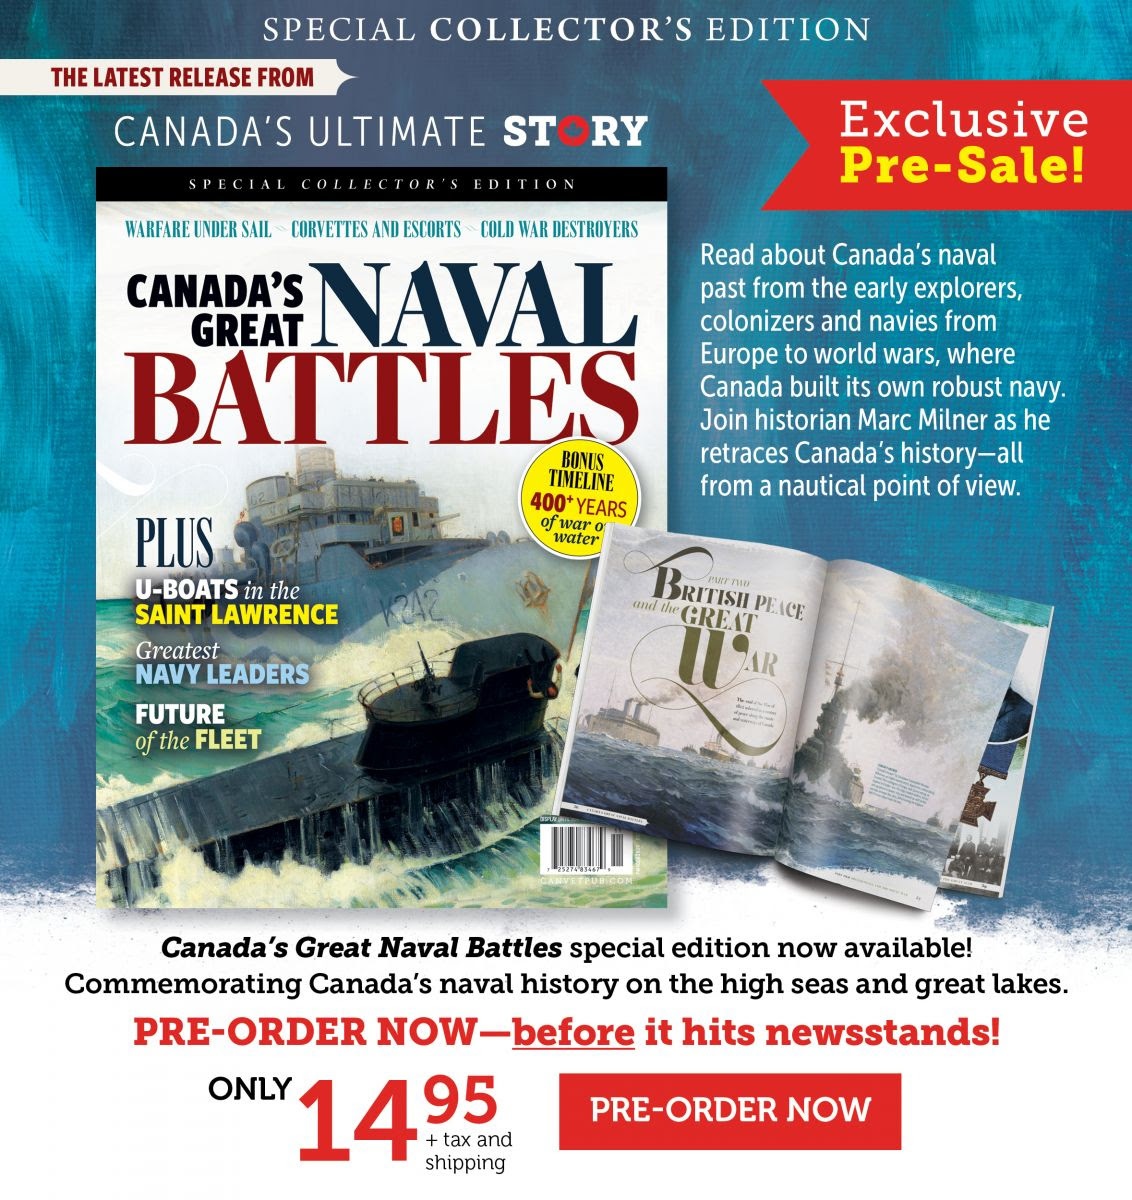 Canada's Great Naval Battles